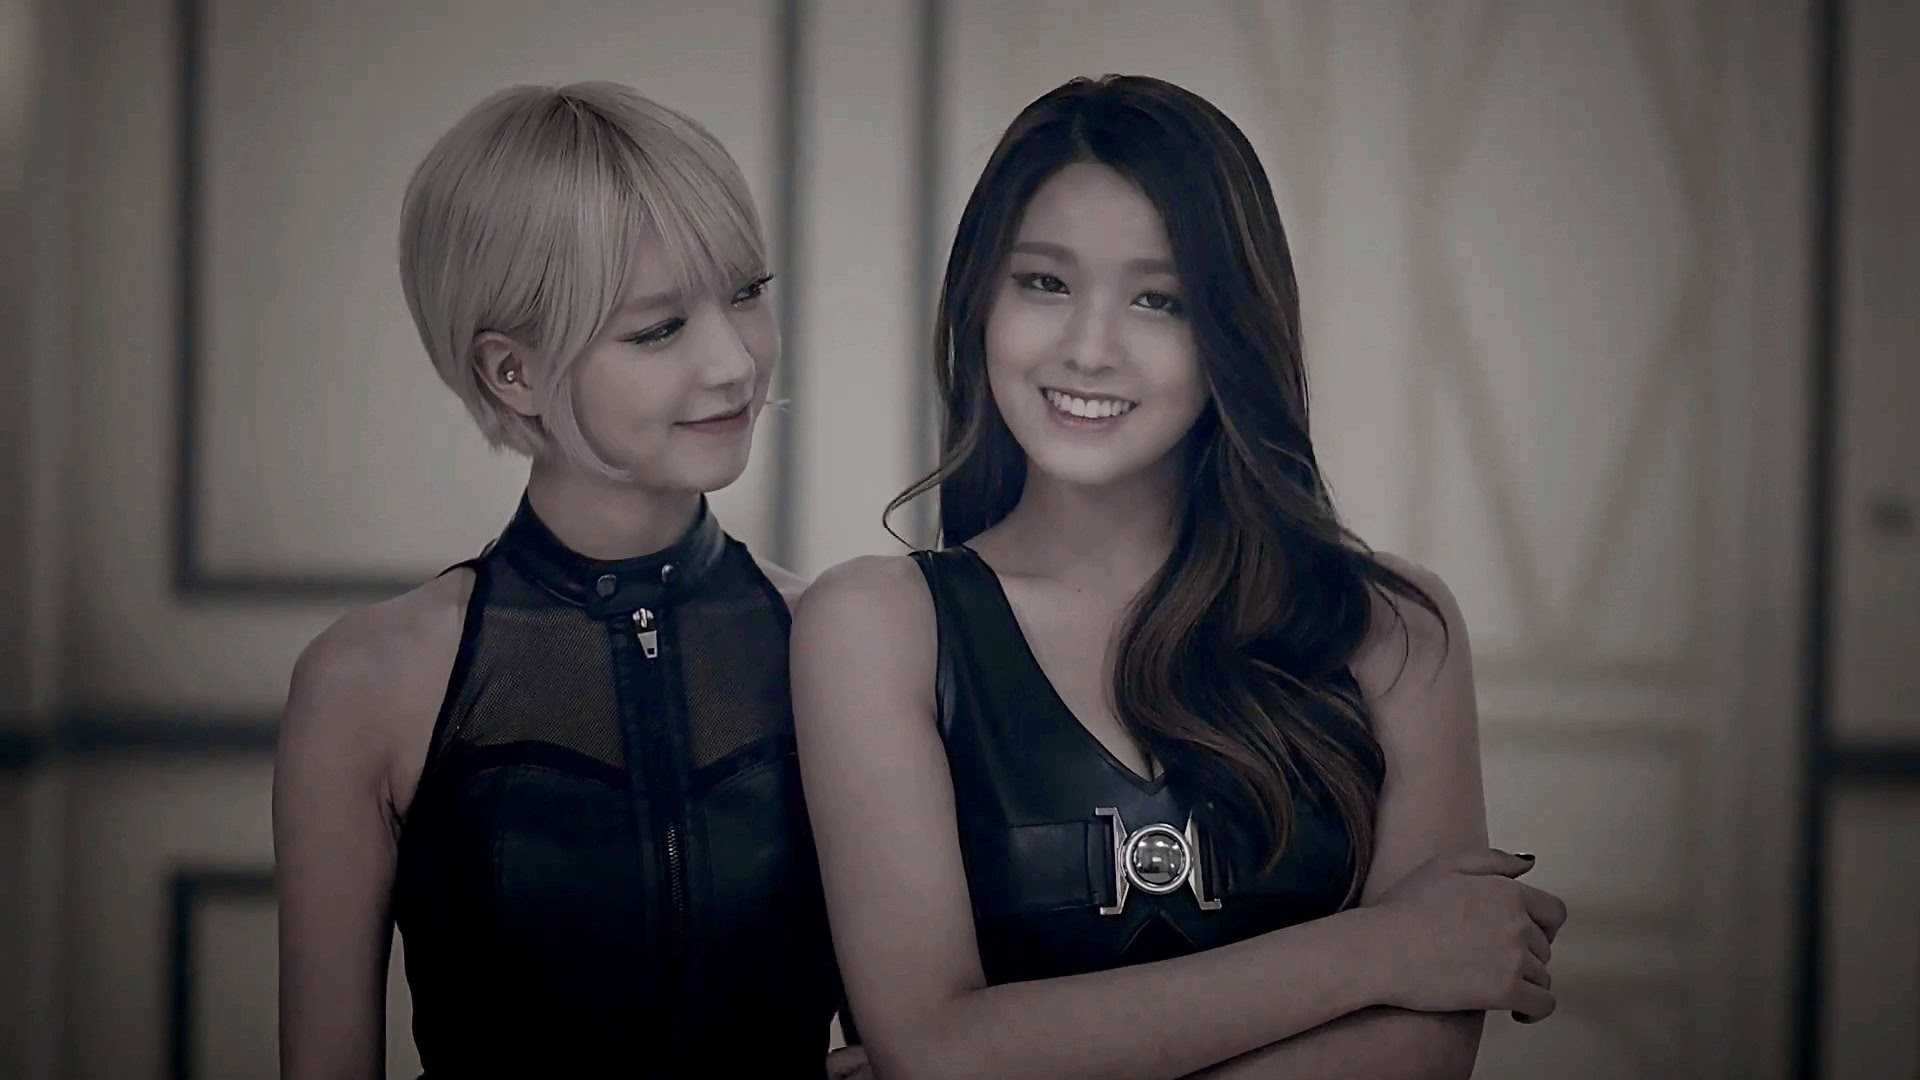 AoA Like A Cat Seolhyun Choa